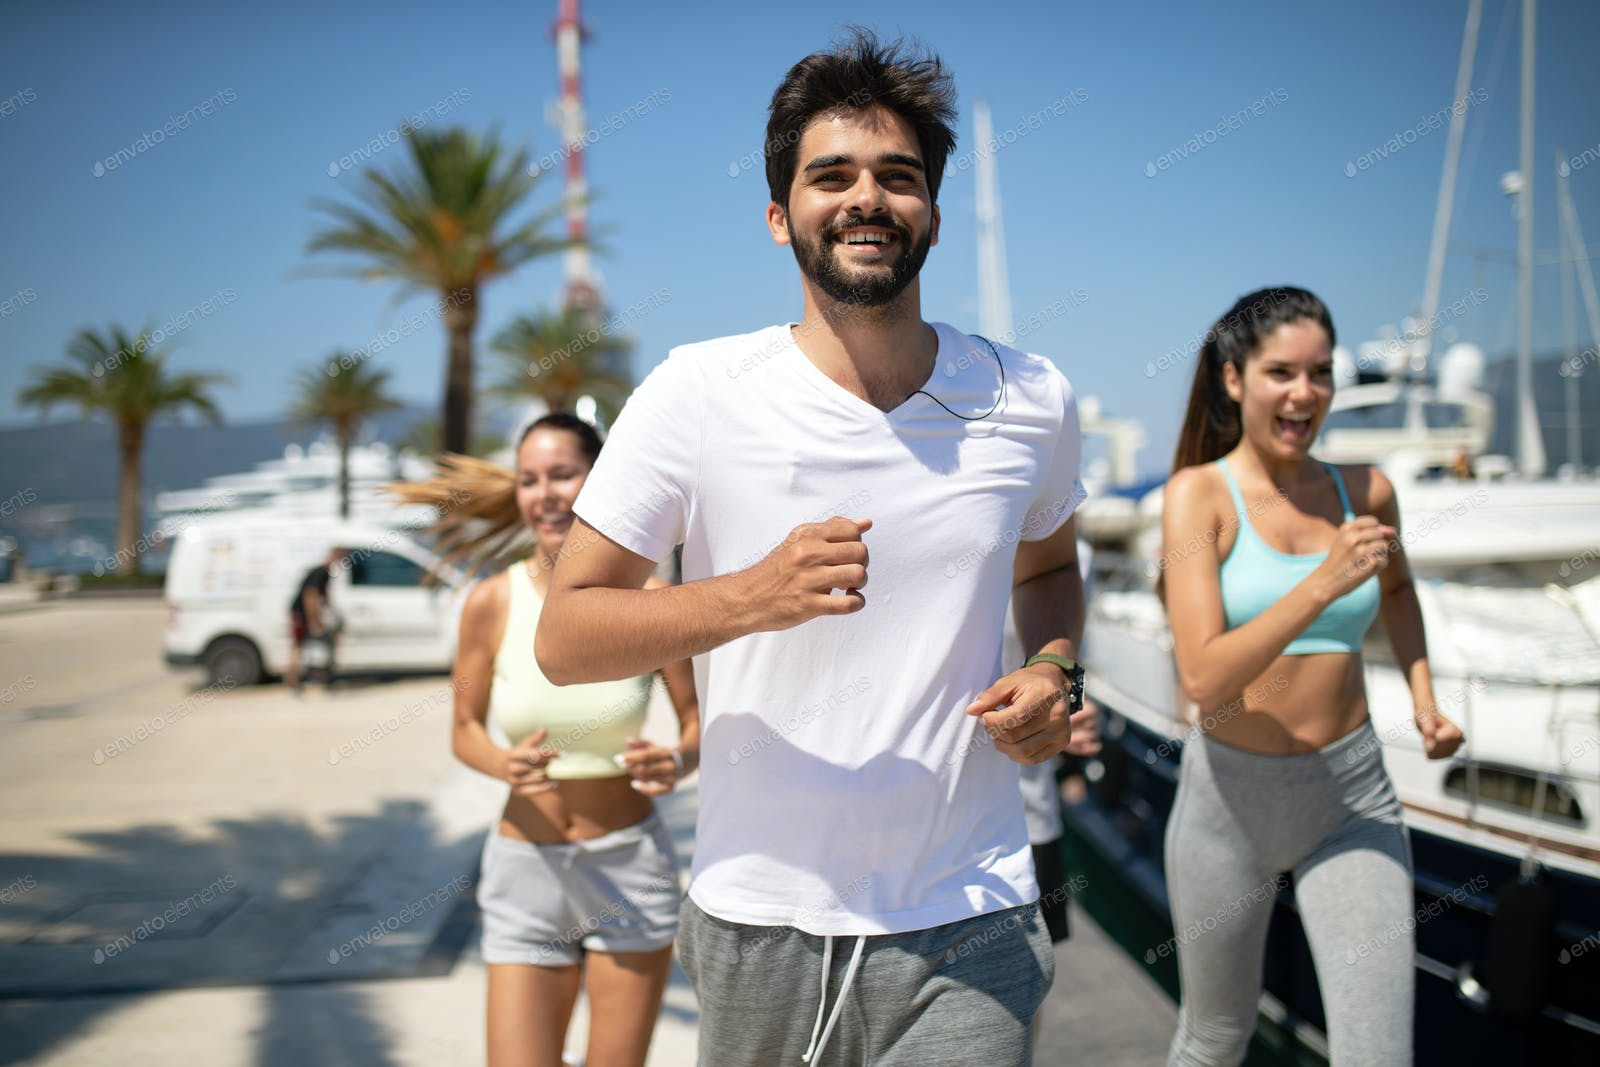 Running Friends Sport Exercising And Healthy Lifestyle